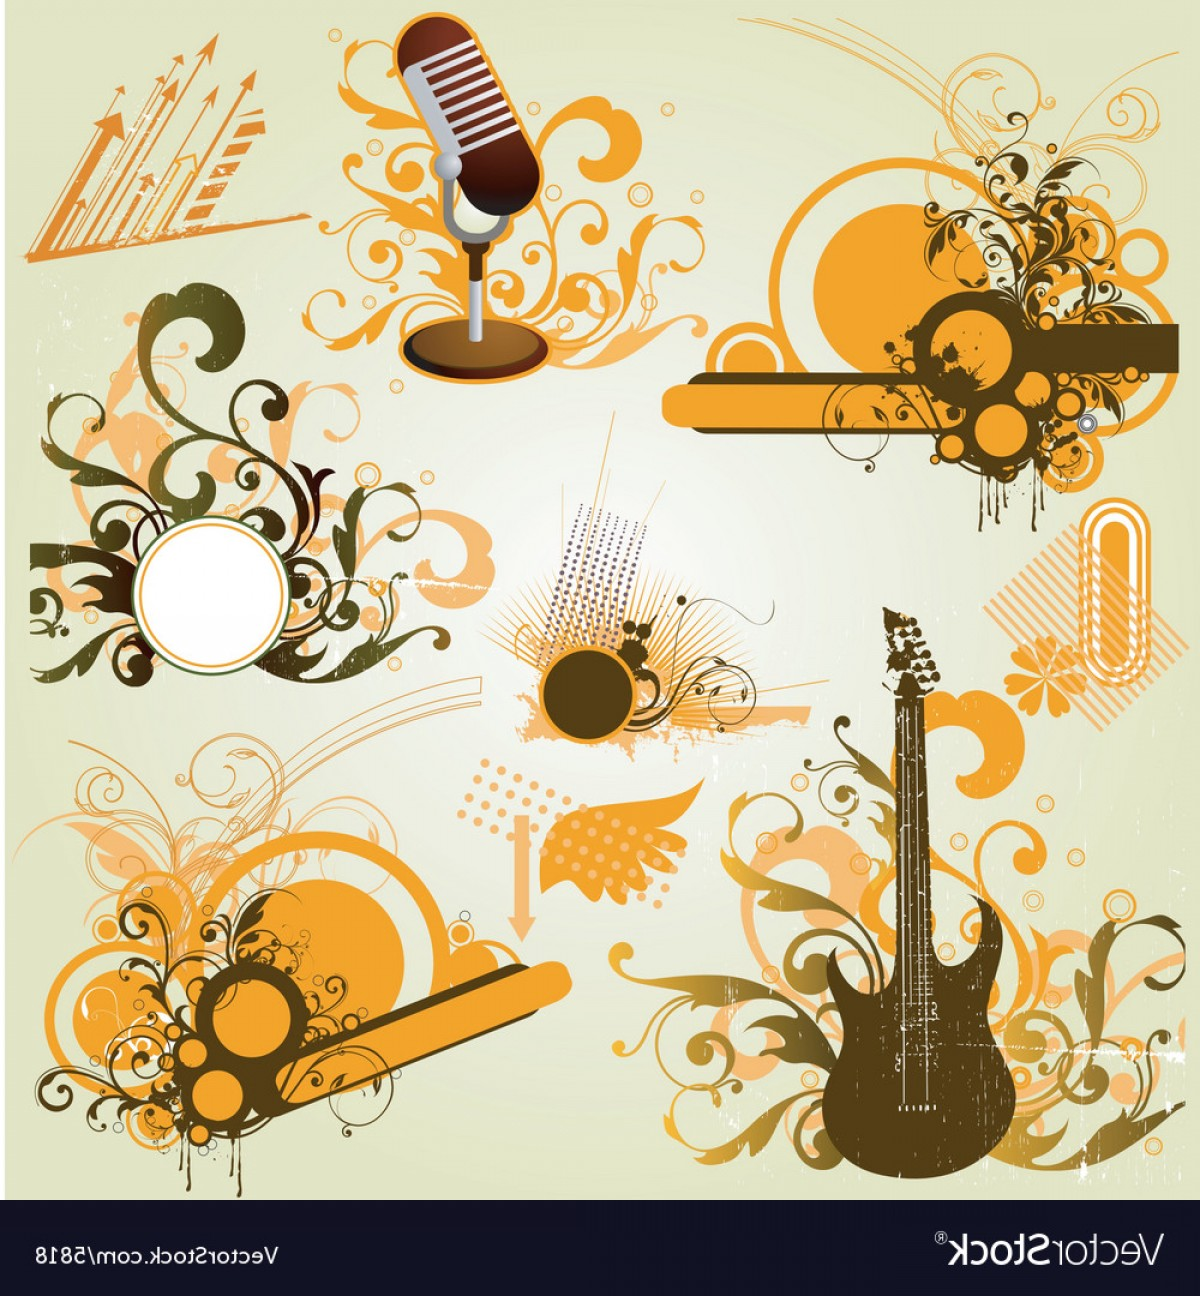 Wicked Musical Logo Vector: Vintage Retro Music Elements Vector